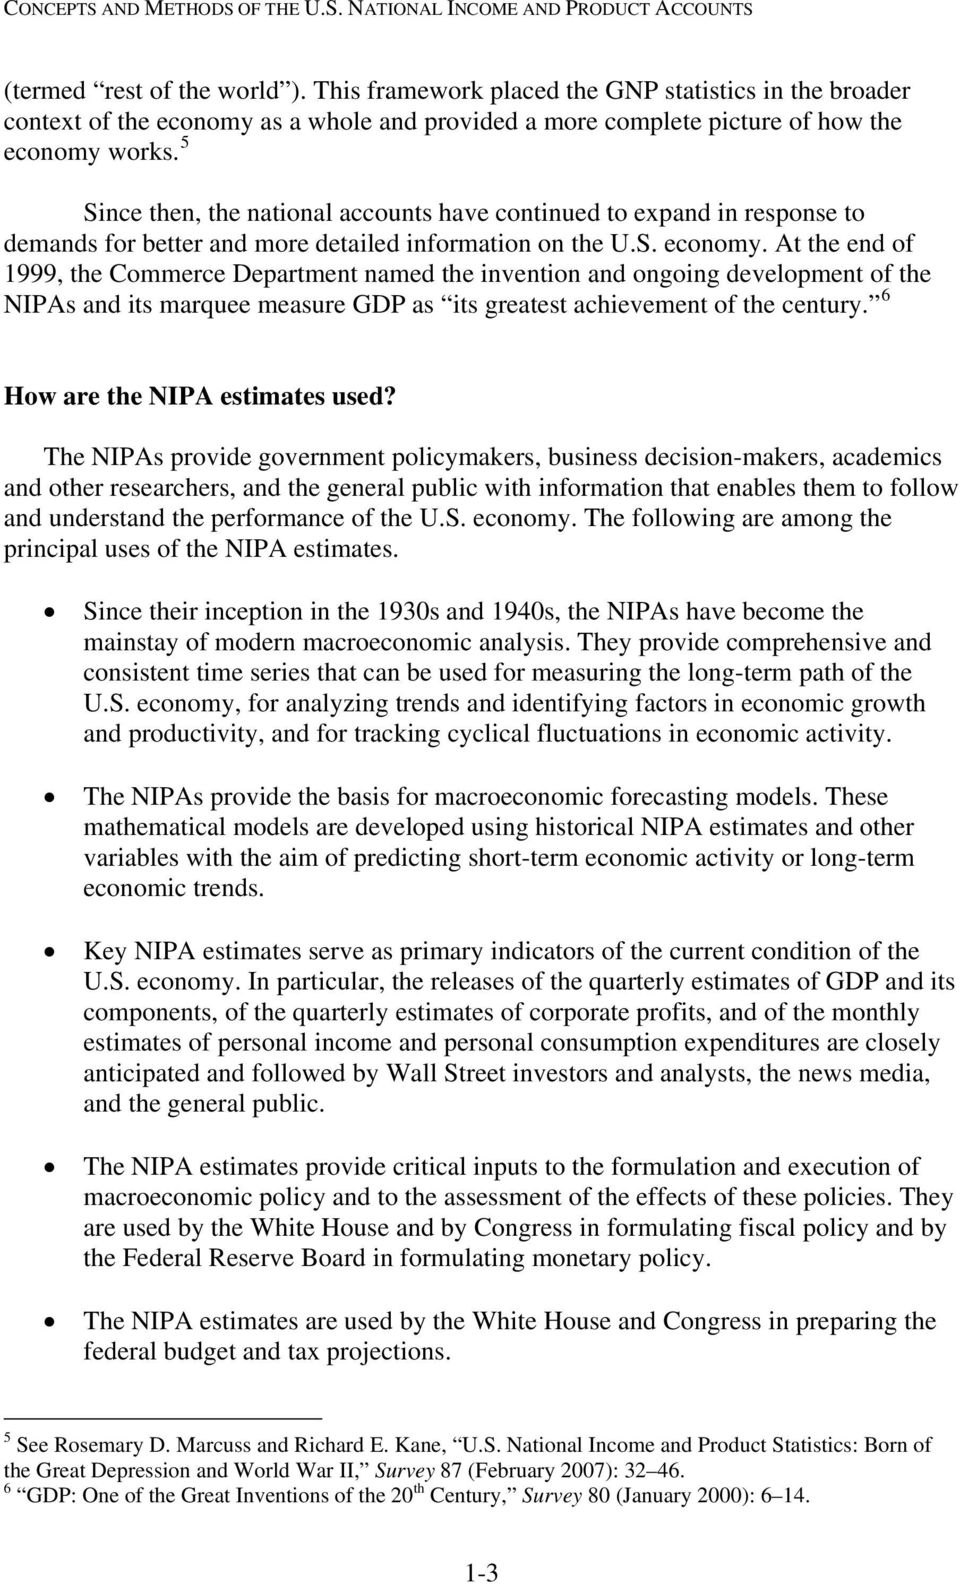 At the end of 1999, the Commerce Department named the invention and ongoing development of the NIPAs and its marquee measure GDP as its greatest achievement of the century.